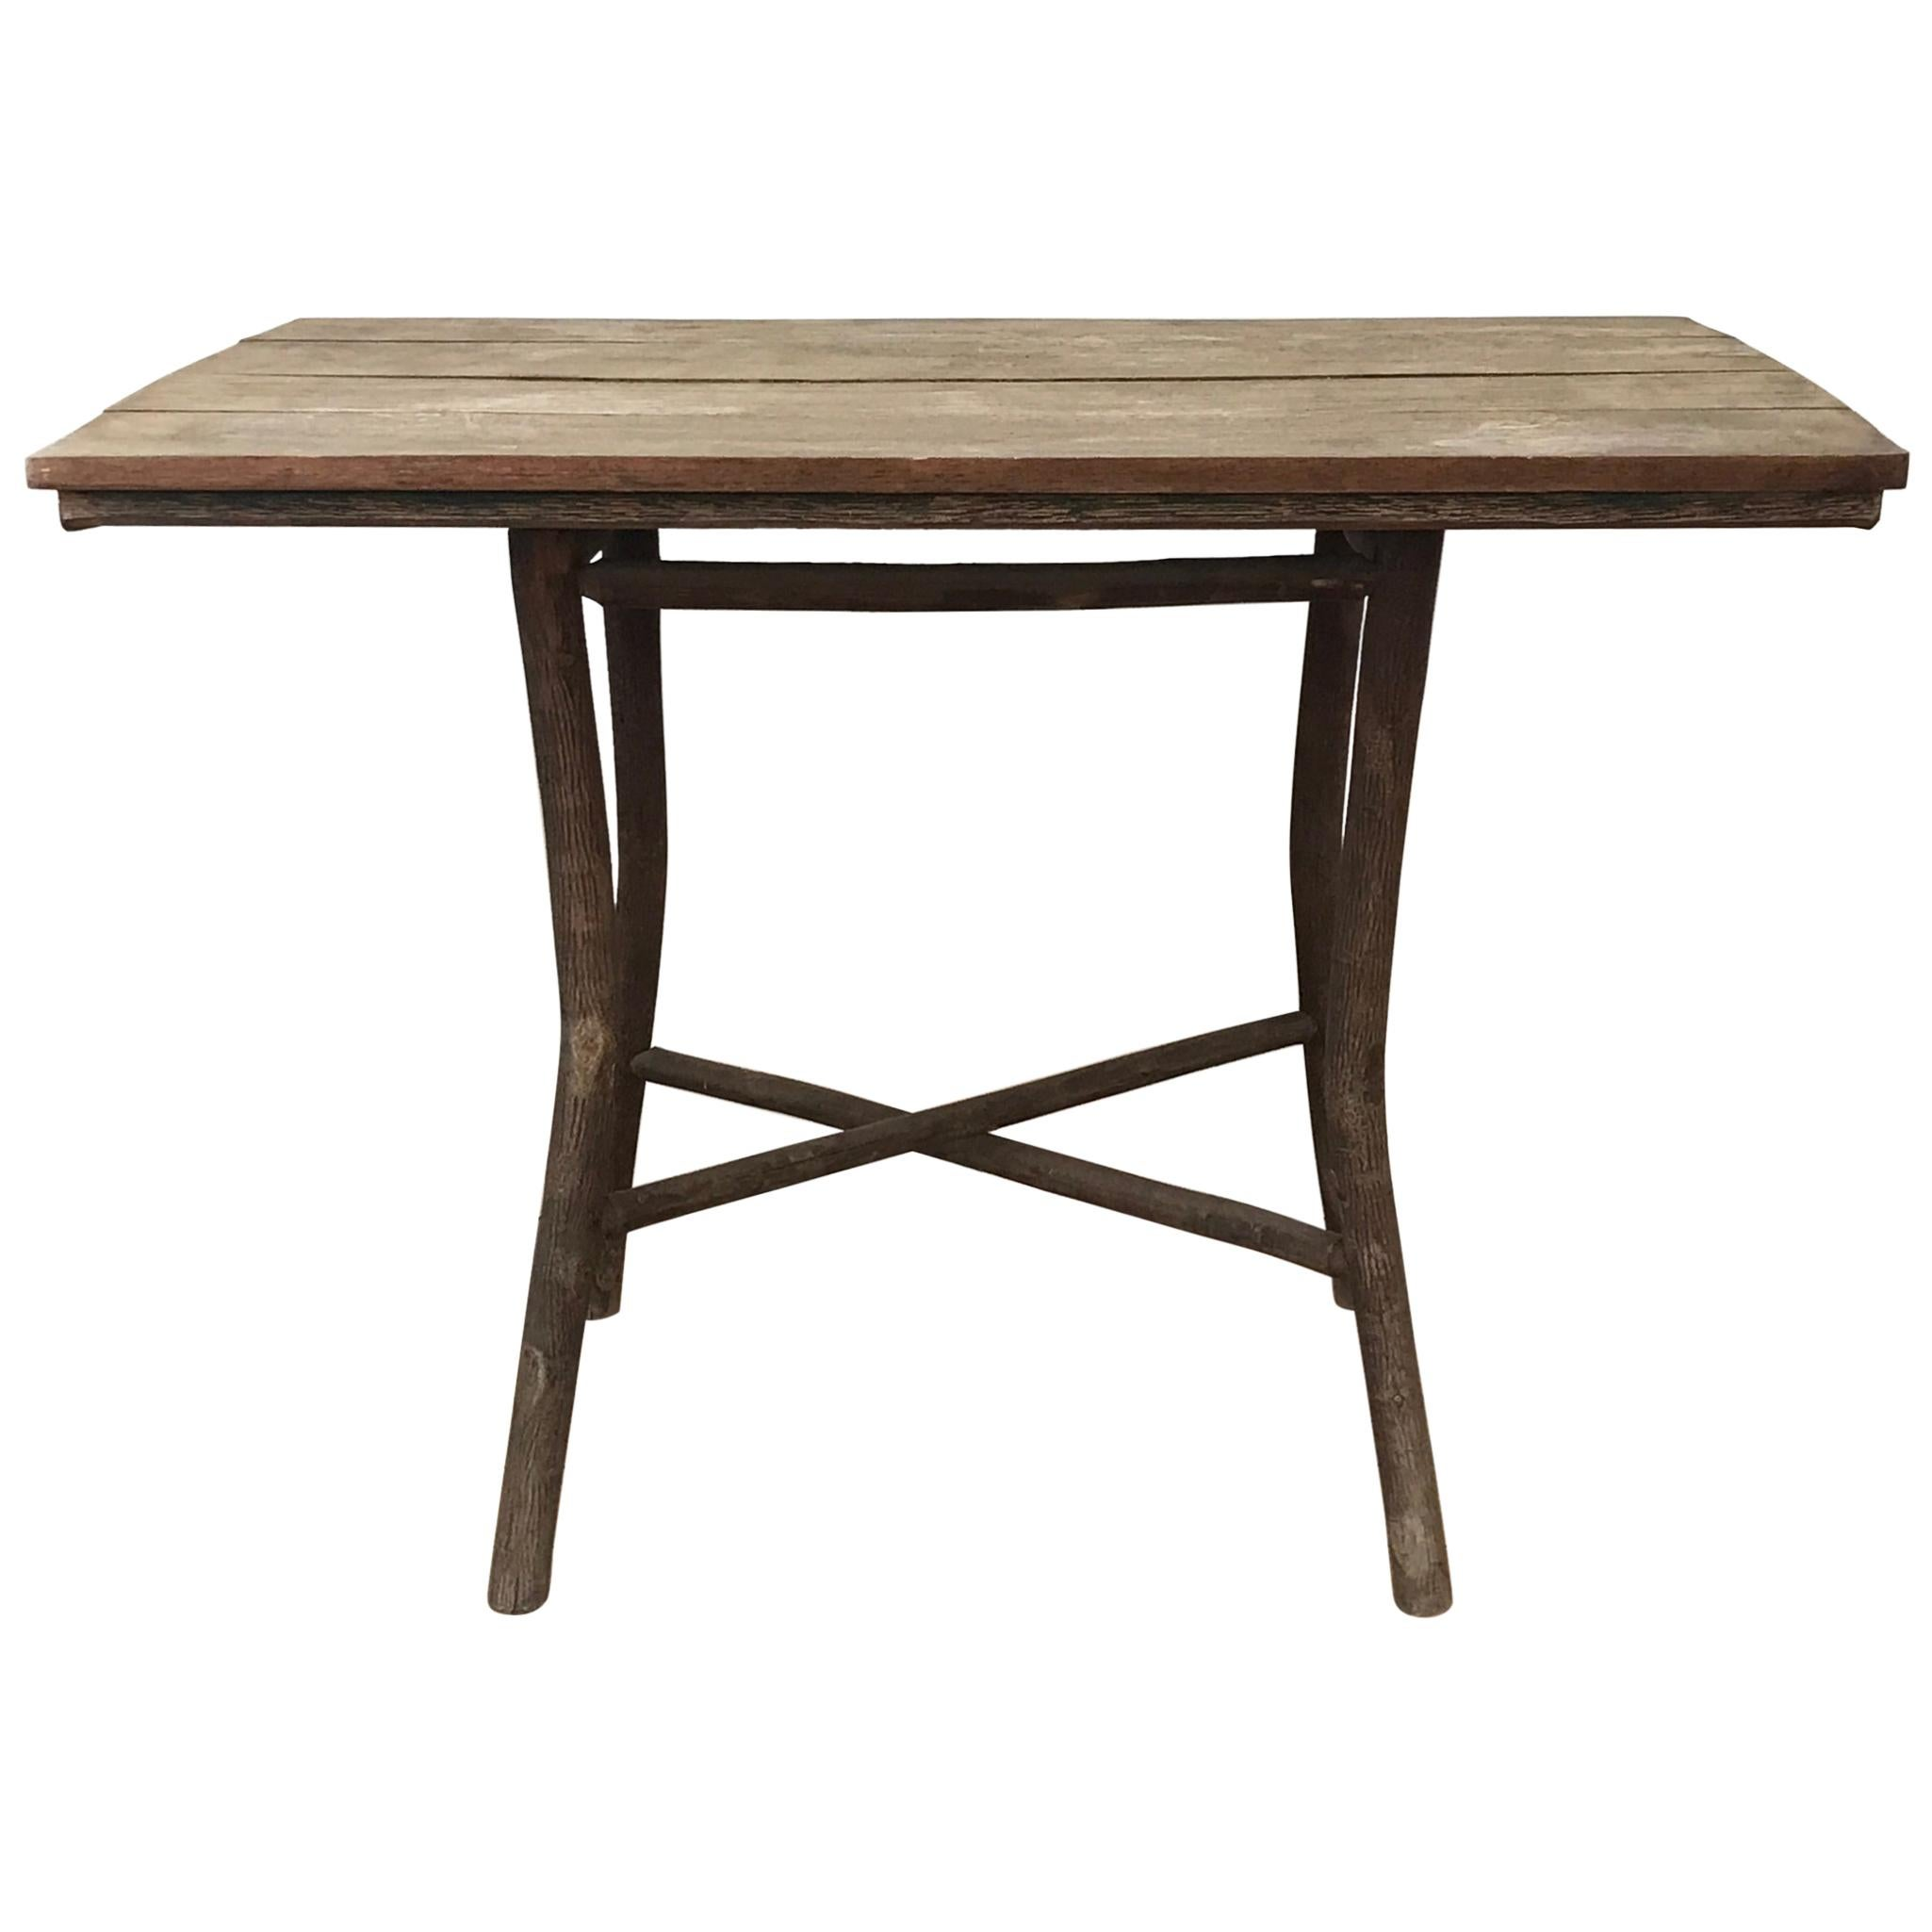 Early 20th Century American Adirondack Center Table, Authentic